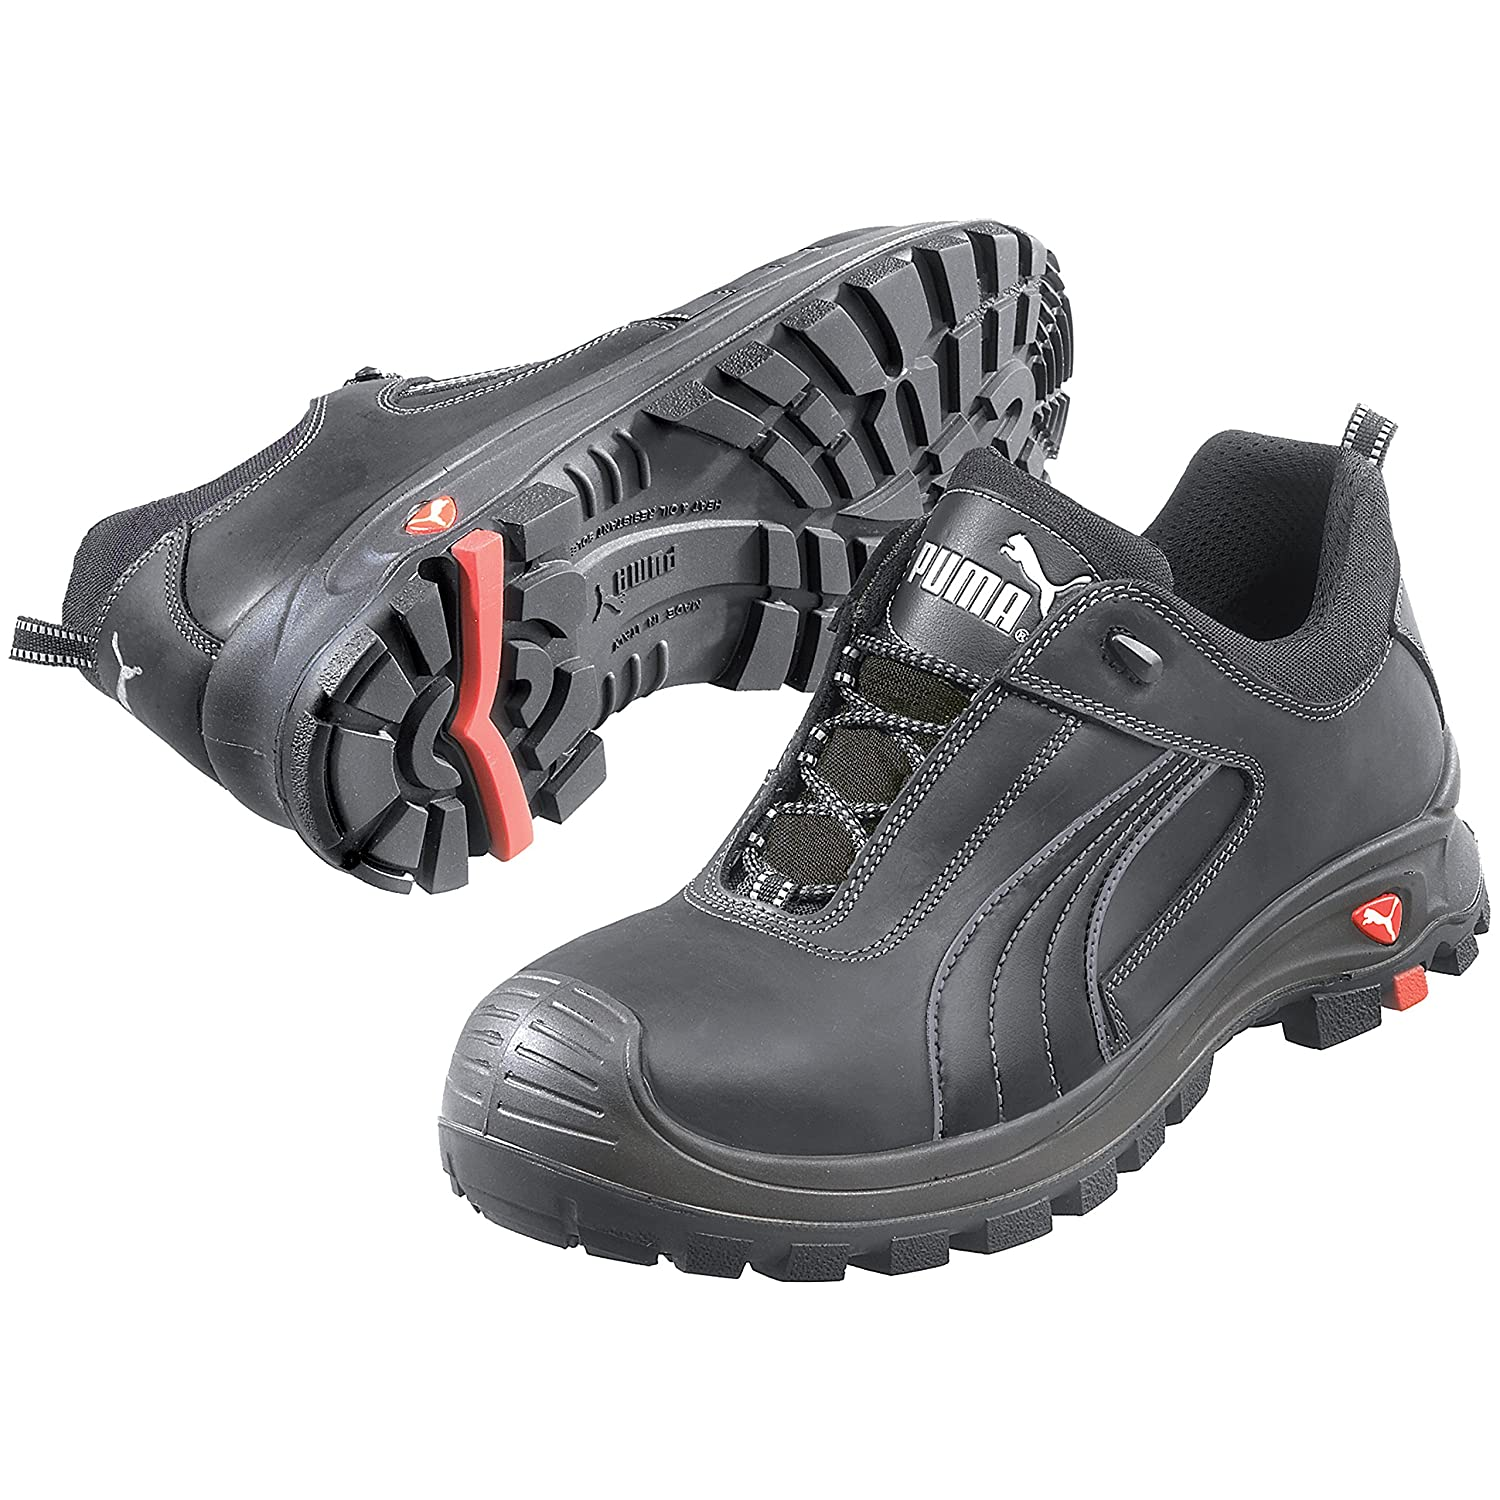 Puma Men's Safety Cascades Eh Low Safety Toe Boots: Amazon